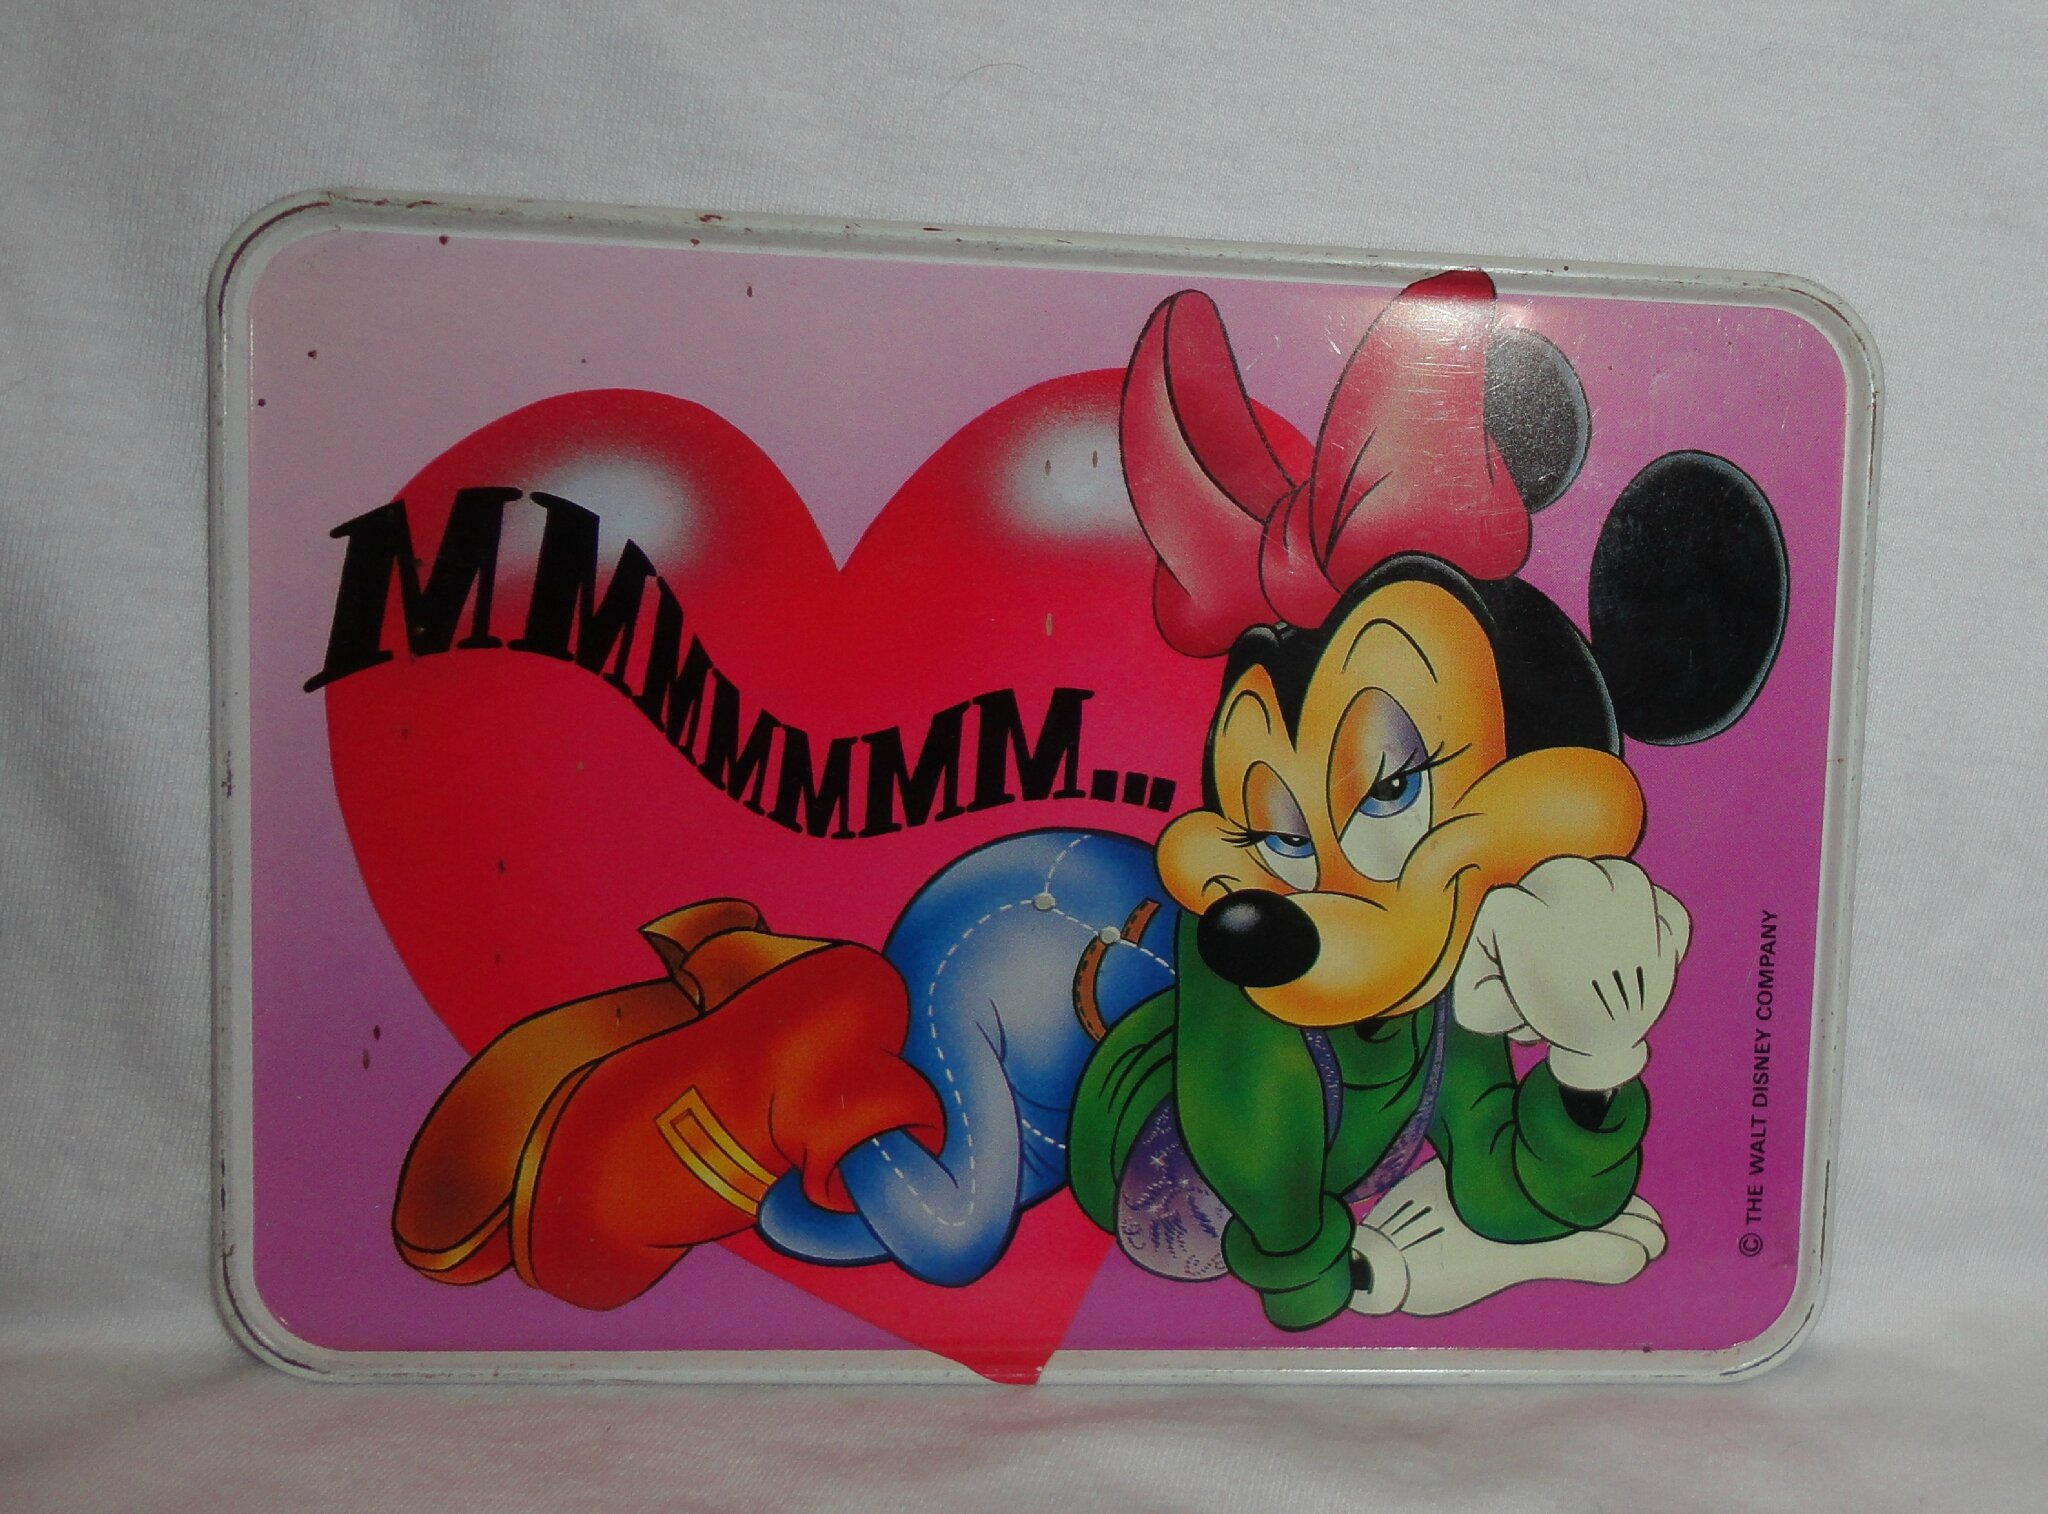 Minnie Mouse Carte en féraille (2)